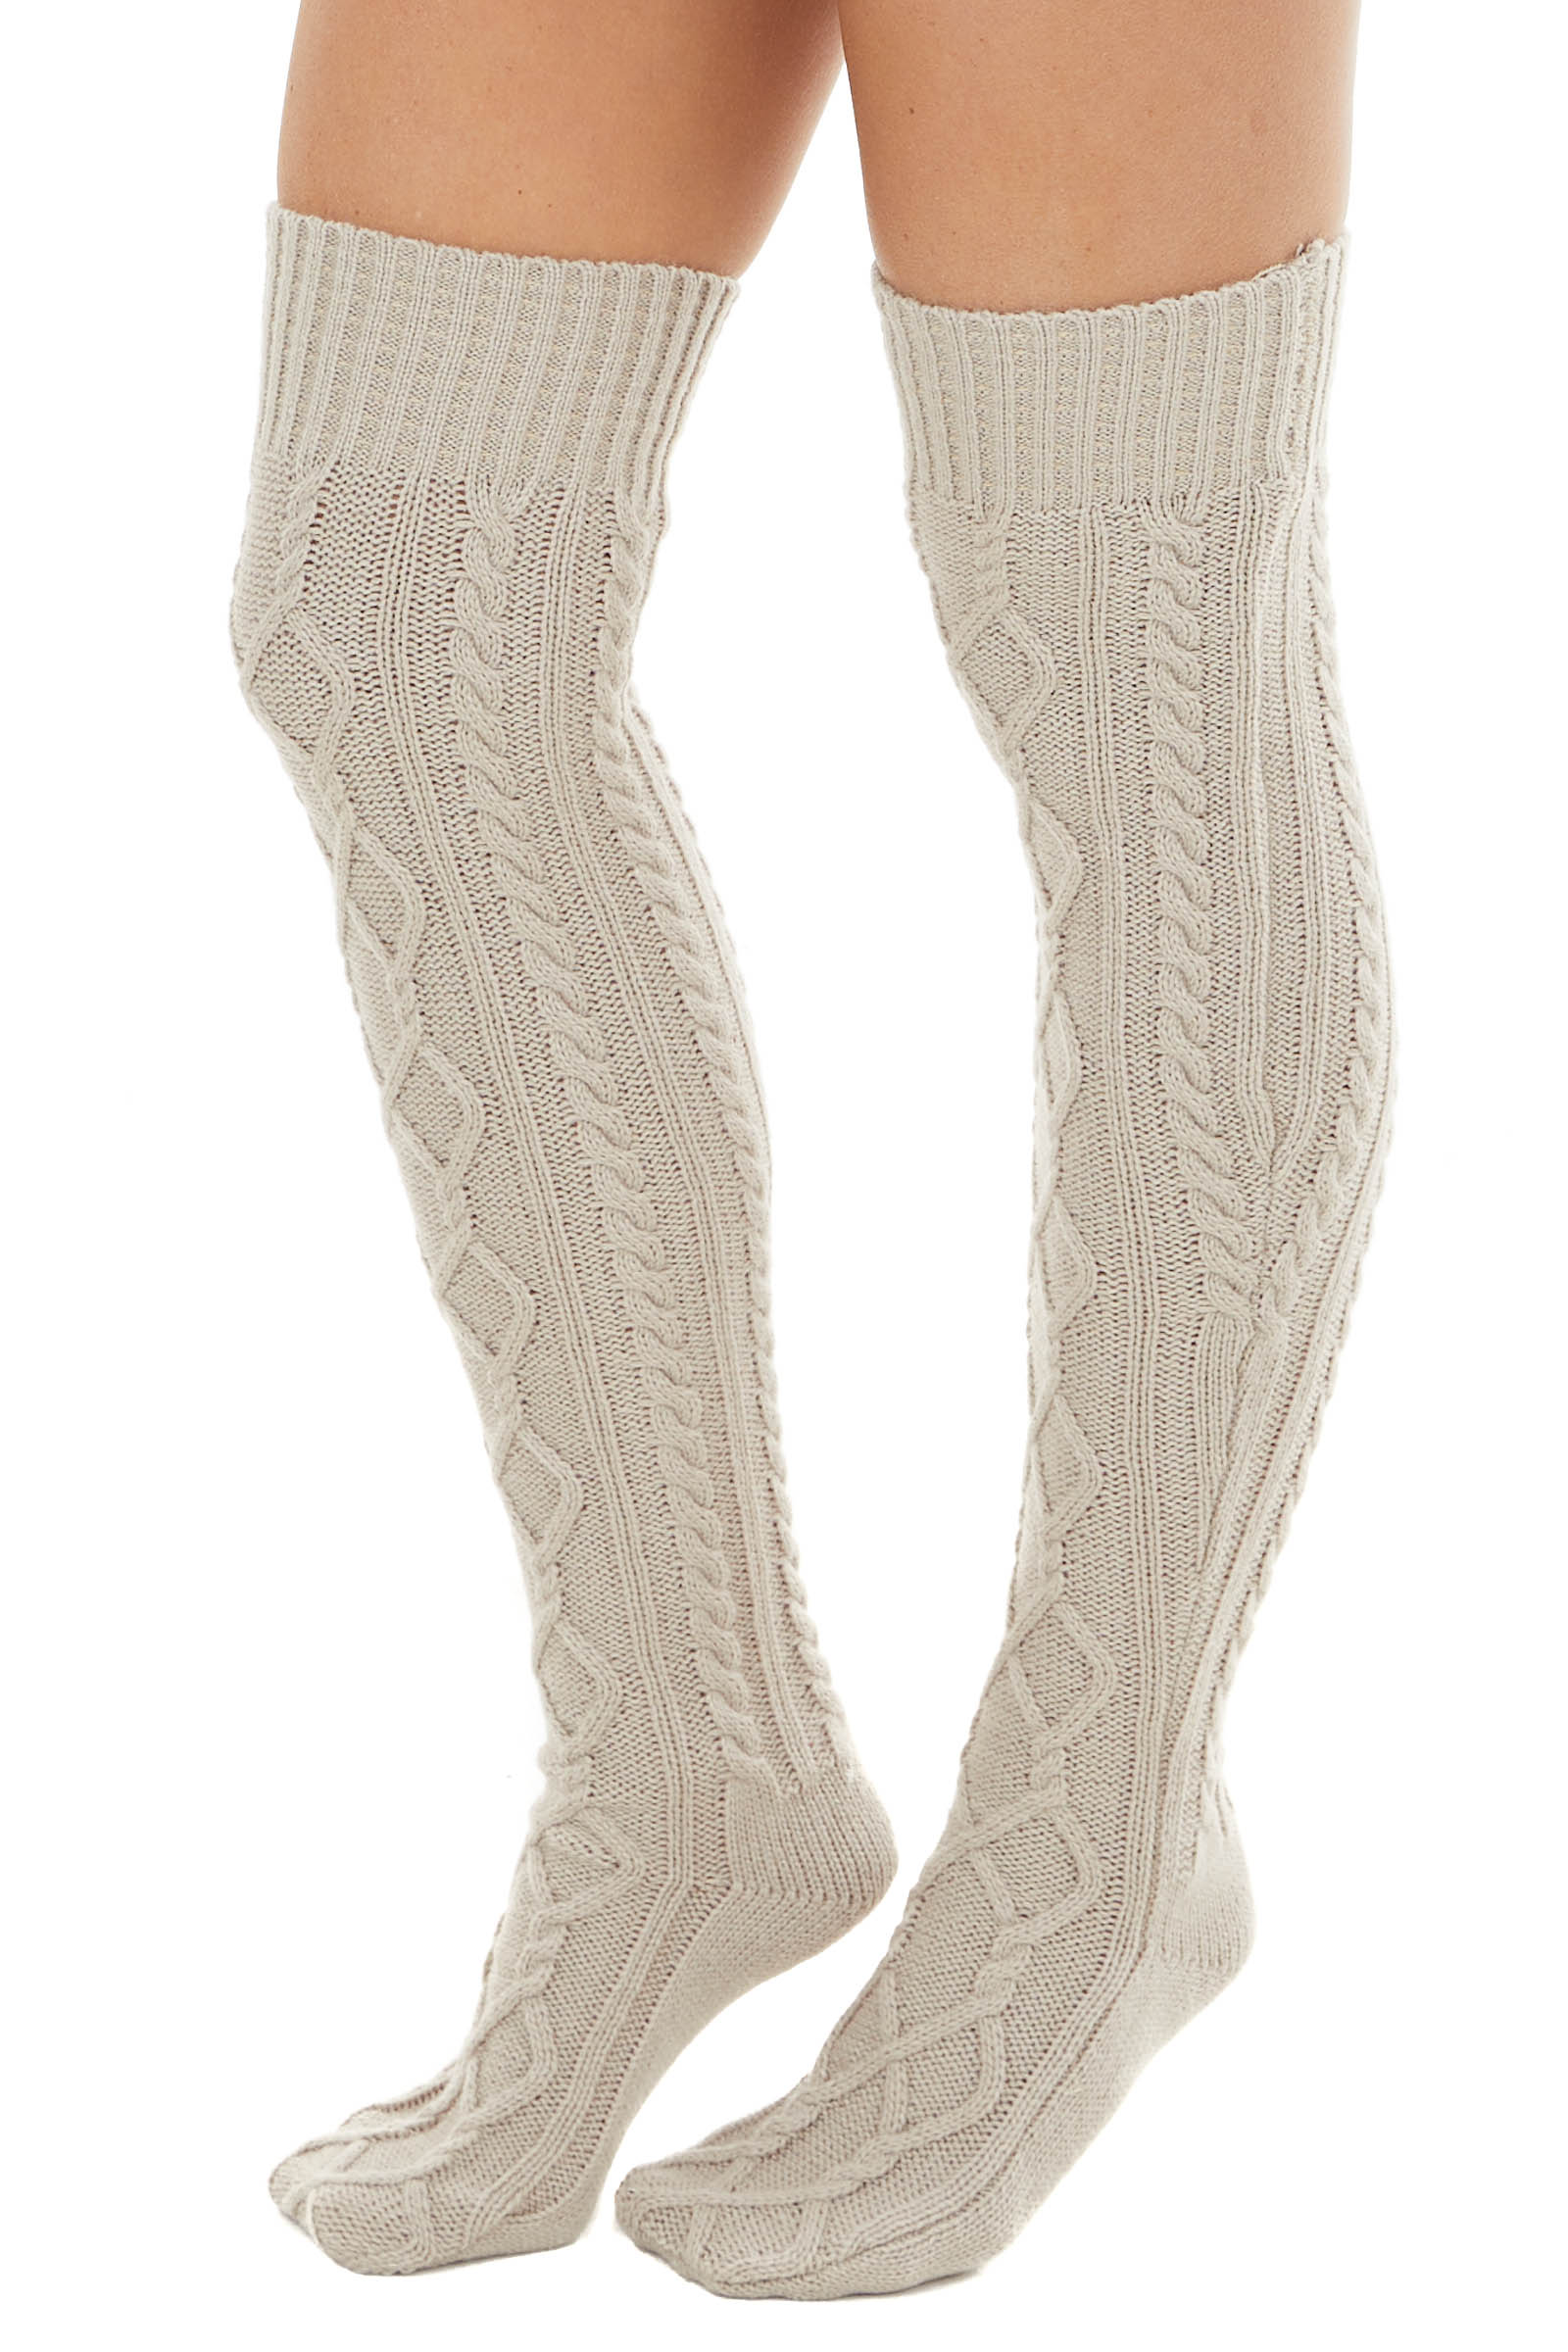 Beige Cable Knit Over the Knee High Fashion Socks